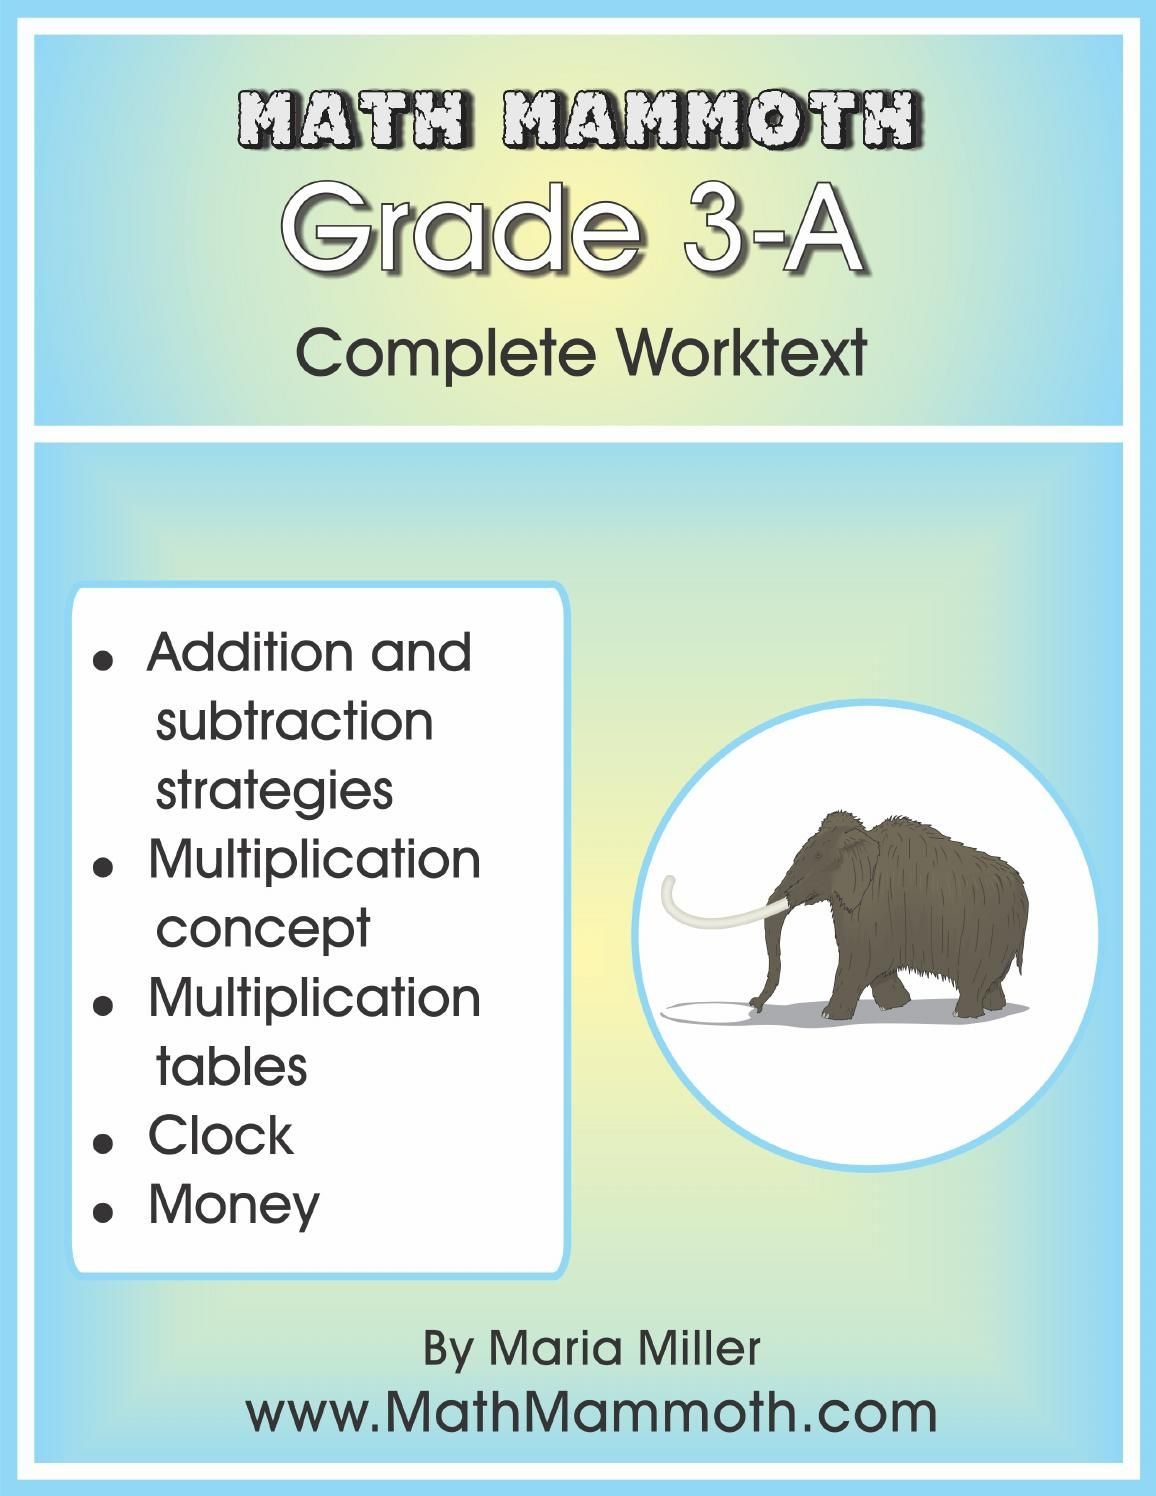 Mathmammoth Grade 3 A